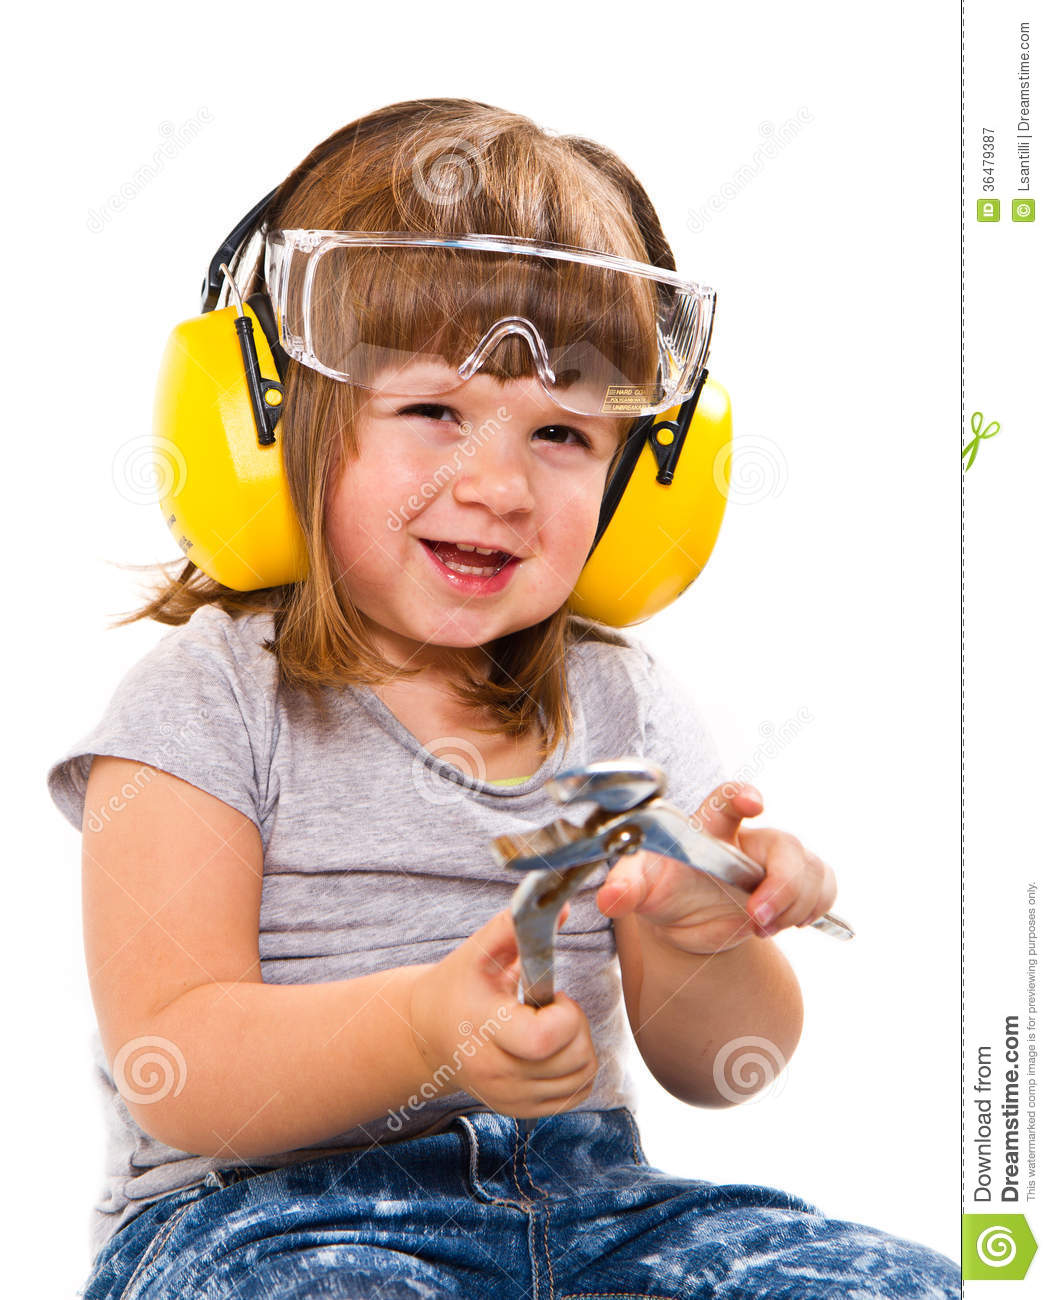 67e064ee8d7 Baby Girl With Working Tool Stock Image - Image of white